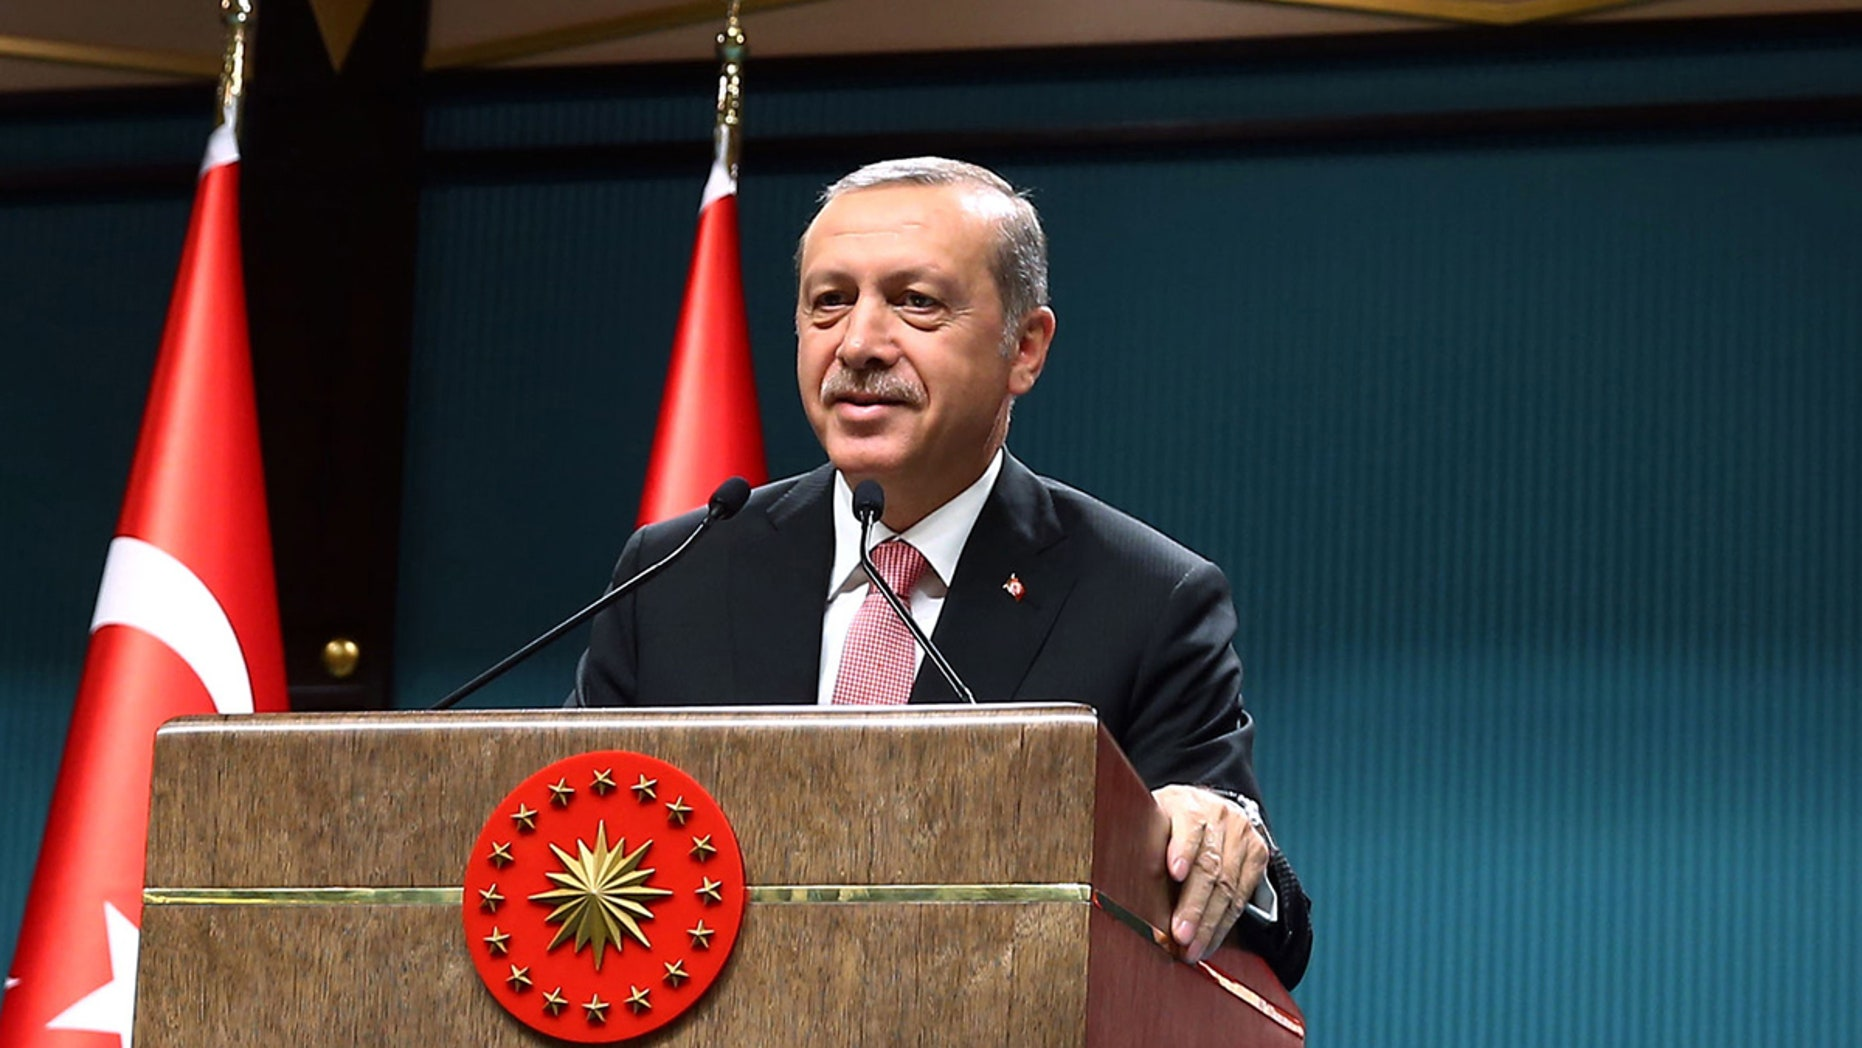 Turkey's President Recep Tayyip Erdogan speaks after an emergency meeting of the government in Ankara, Turkey, late Wednesday, July 20, 2016. (Kayhan Ozer/Pool Photo via AP)